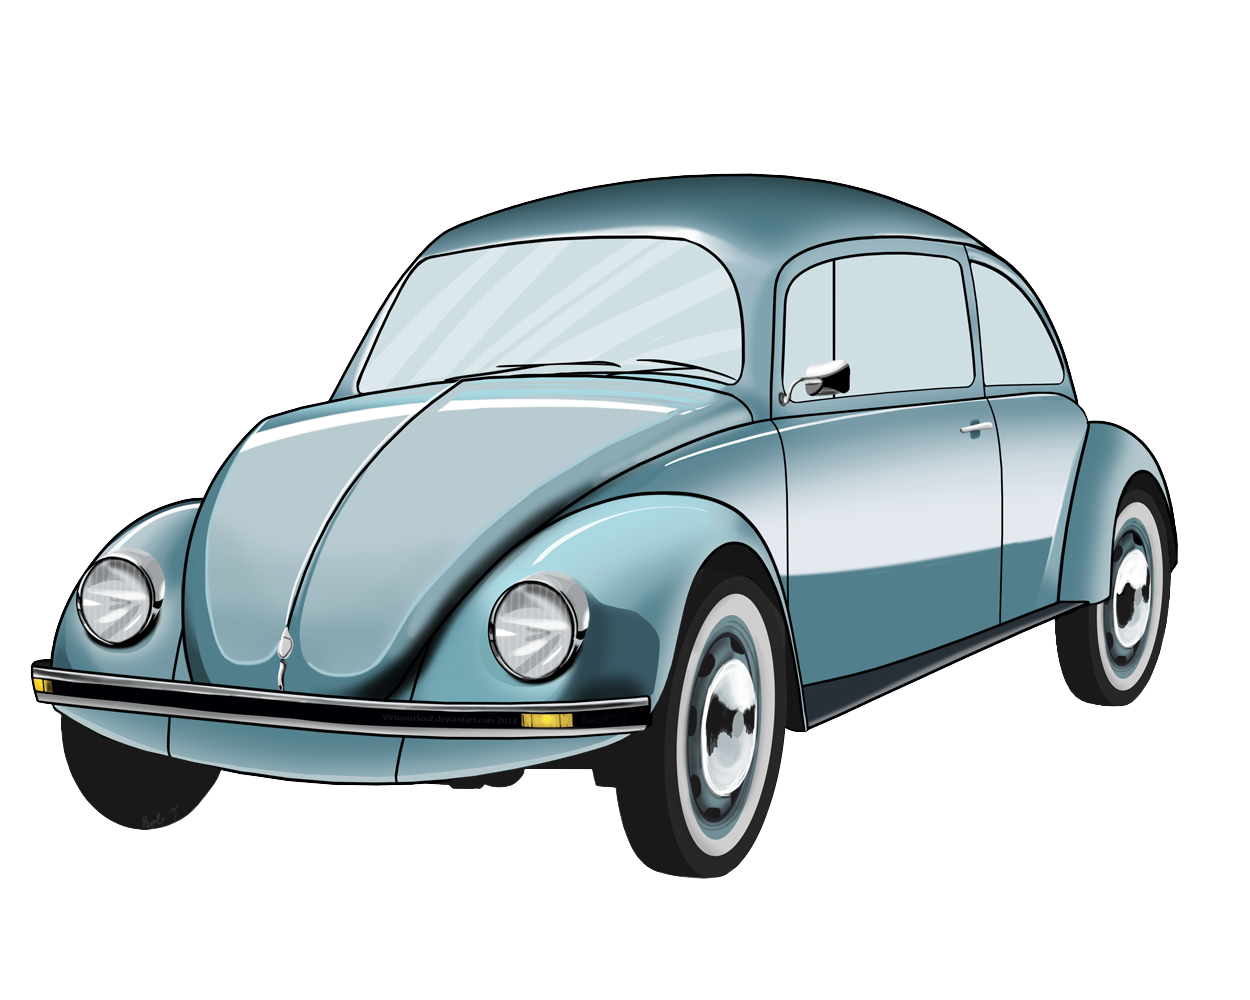 Clipart car vintage. Vw bug craft ideas